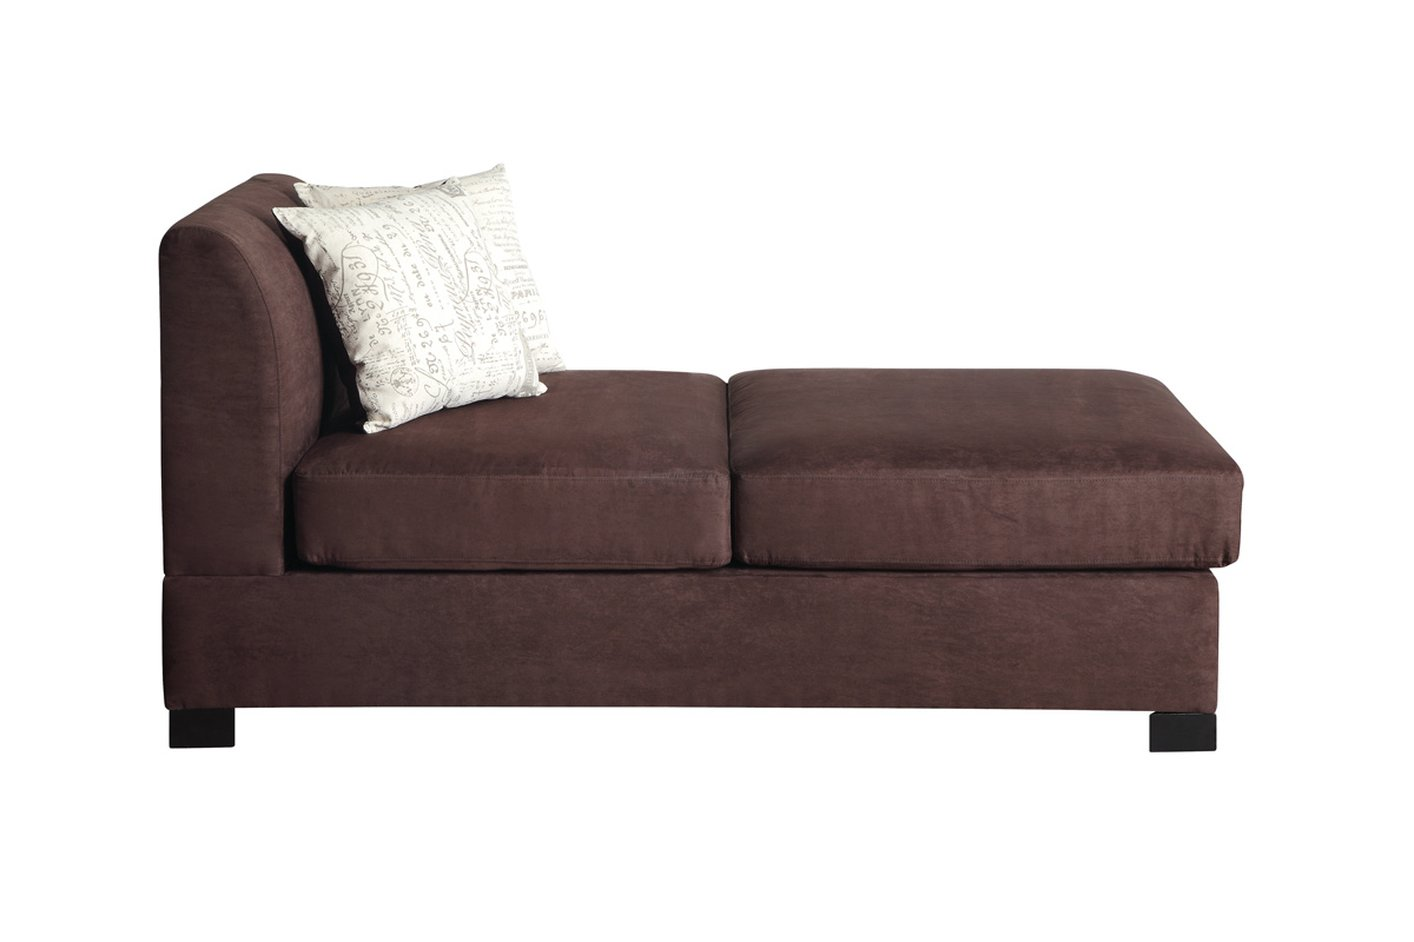 Nia brown fabric chaise lounge steal a sofa furniture for Brown chaise longue